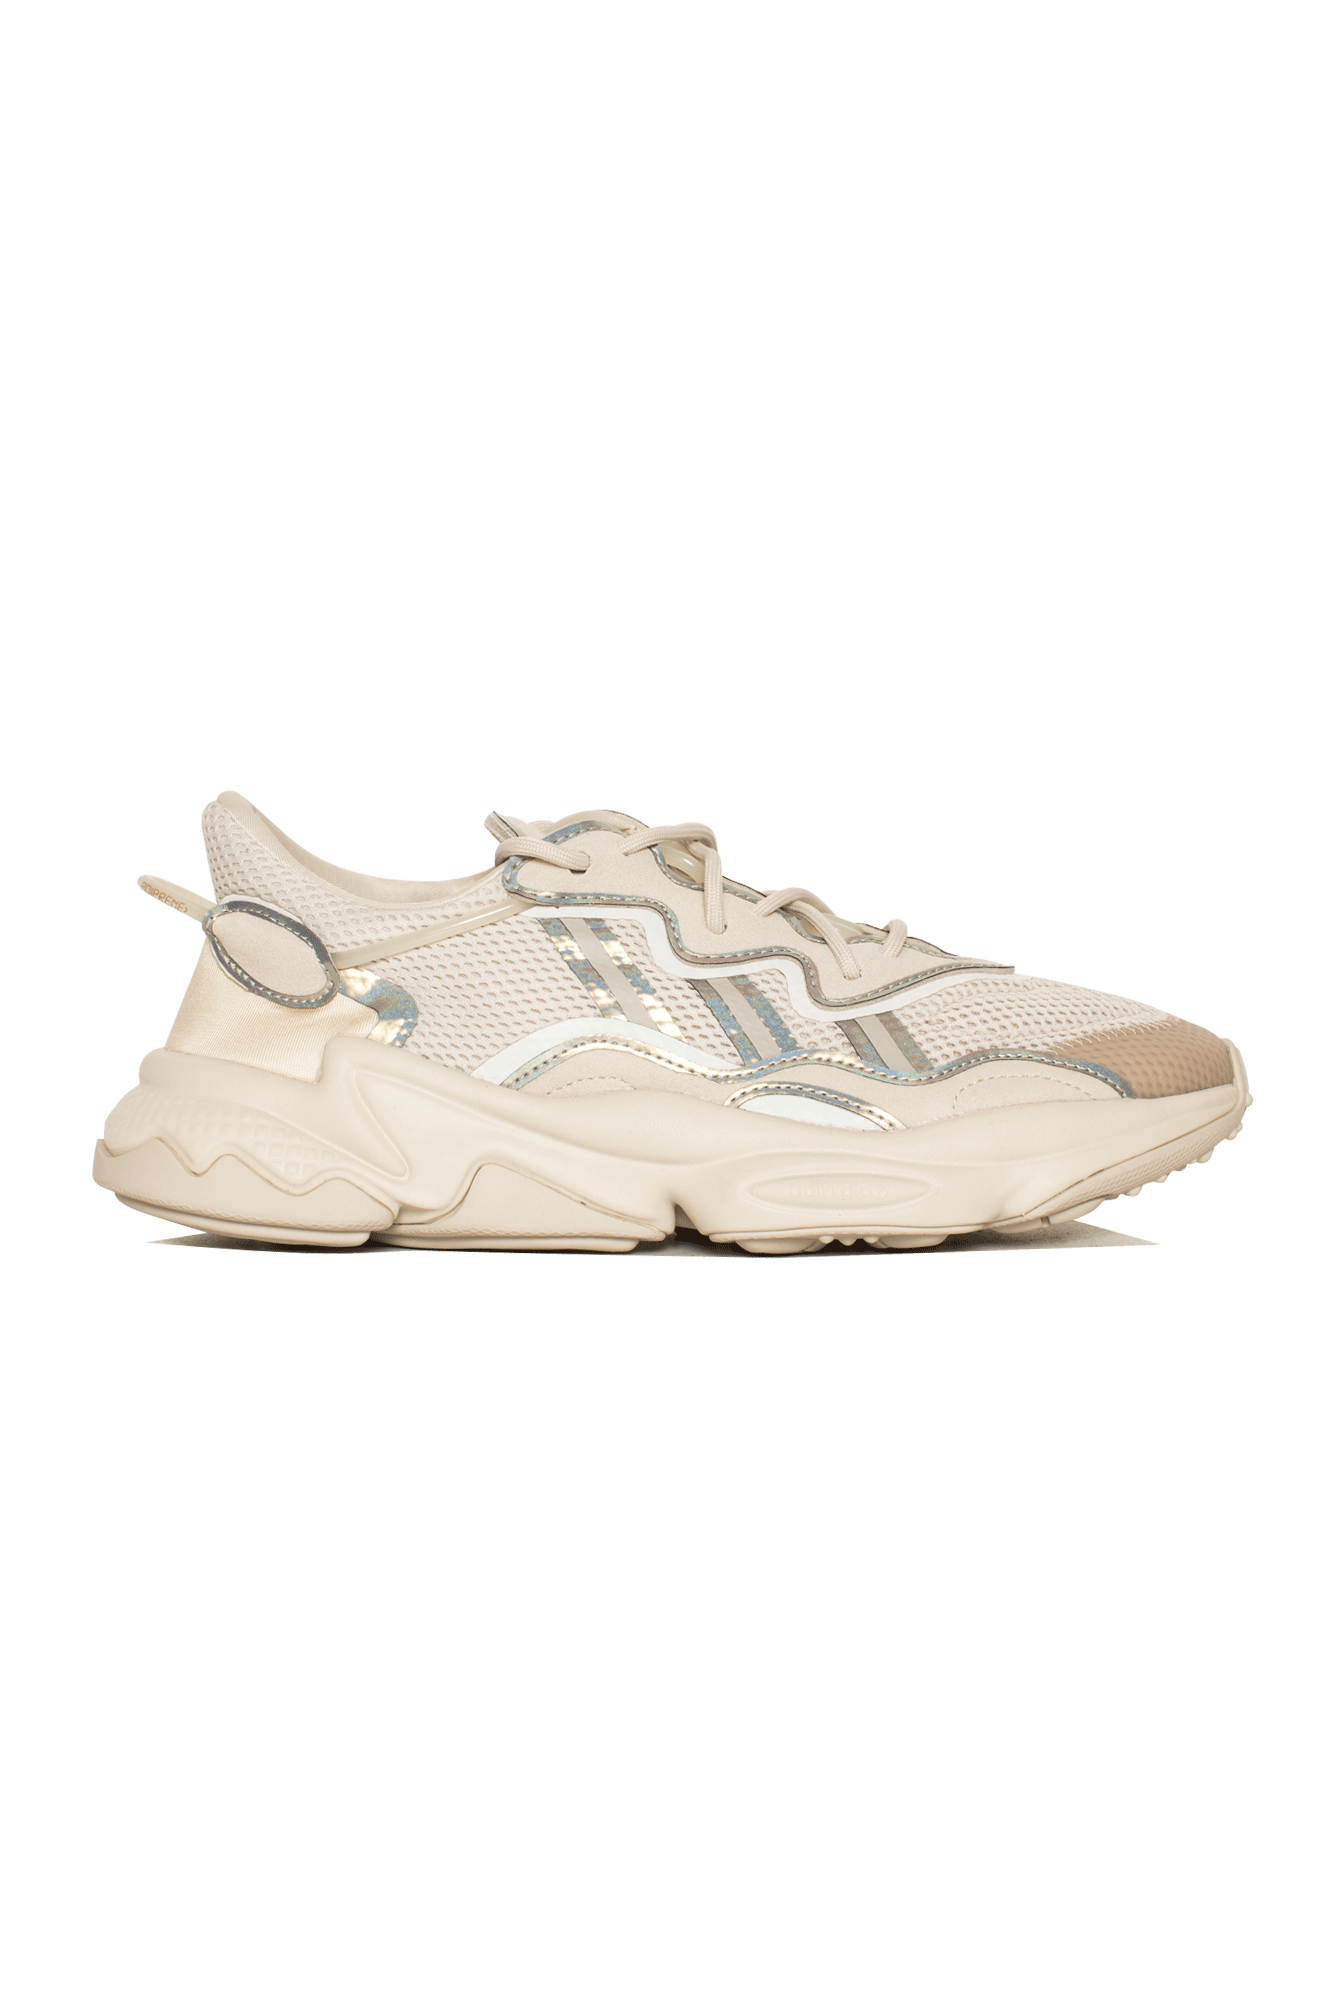 Adidas Originals Sneakers Ozweego Beige FV9655#000#BEIGE#4,5 - One Block Down